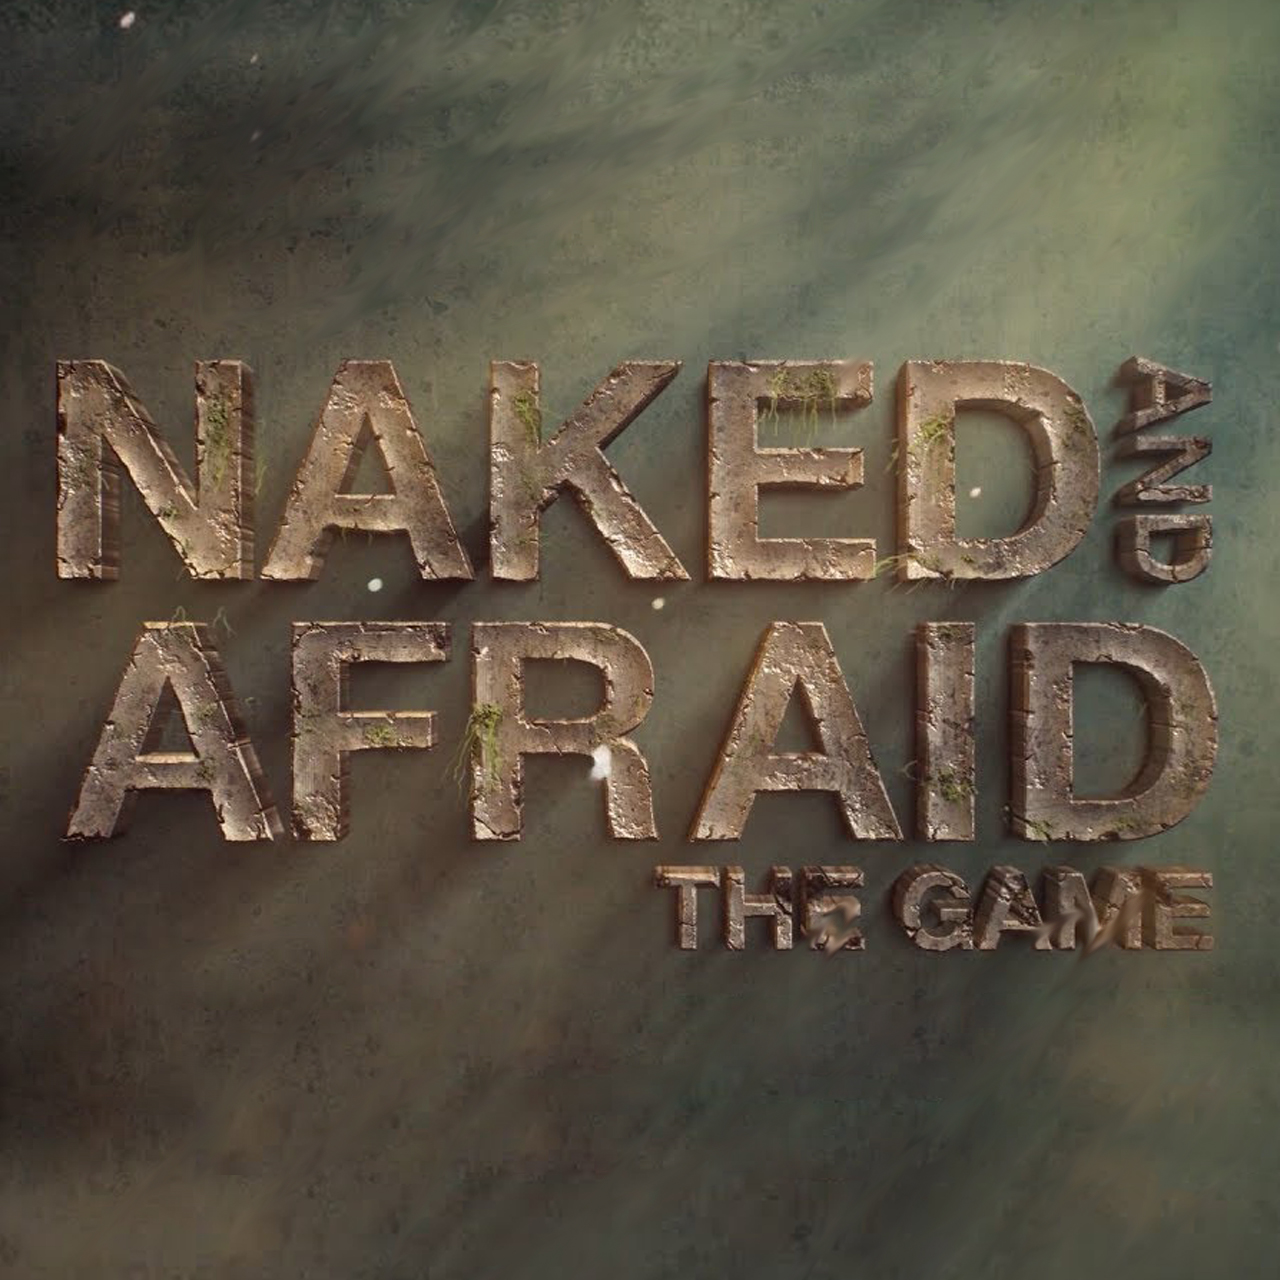 NAKED & AFRAID THE GAME - Enter the challenge for the true surivivors. Choose a contestant with unique traits, grab a survival tool and try to endure for 21 days on the deserted island of the Pacific Ocean. Hunt, cook and survive everchanging weather, tropical rains and unbearable heat. The longer you'll survive, the higher the reward.